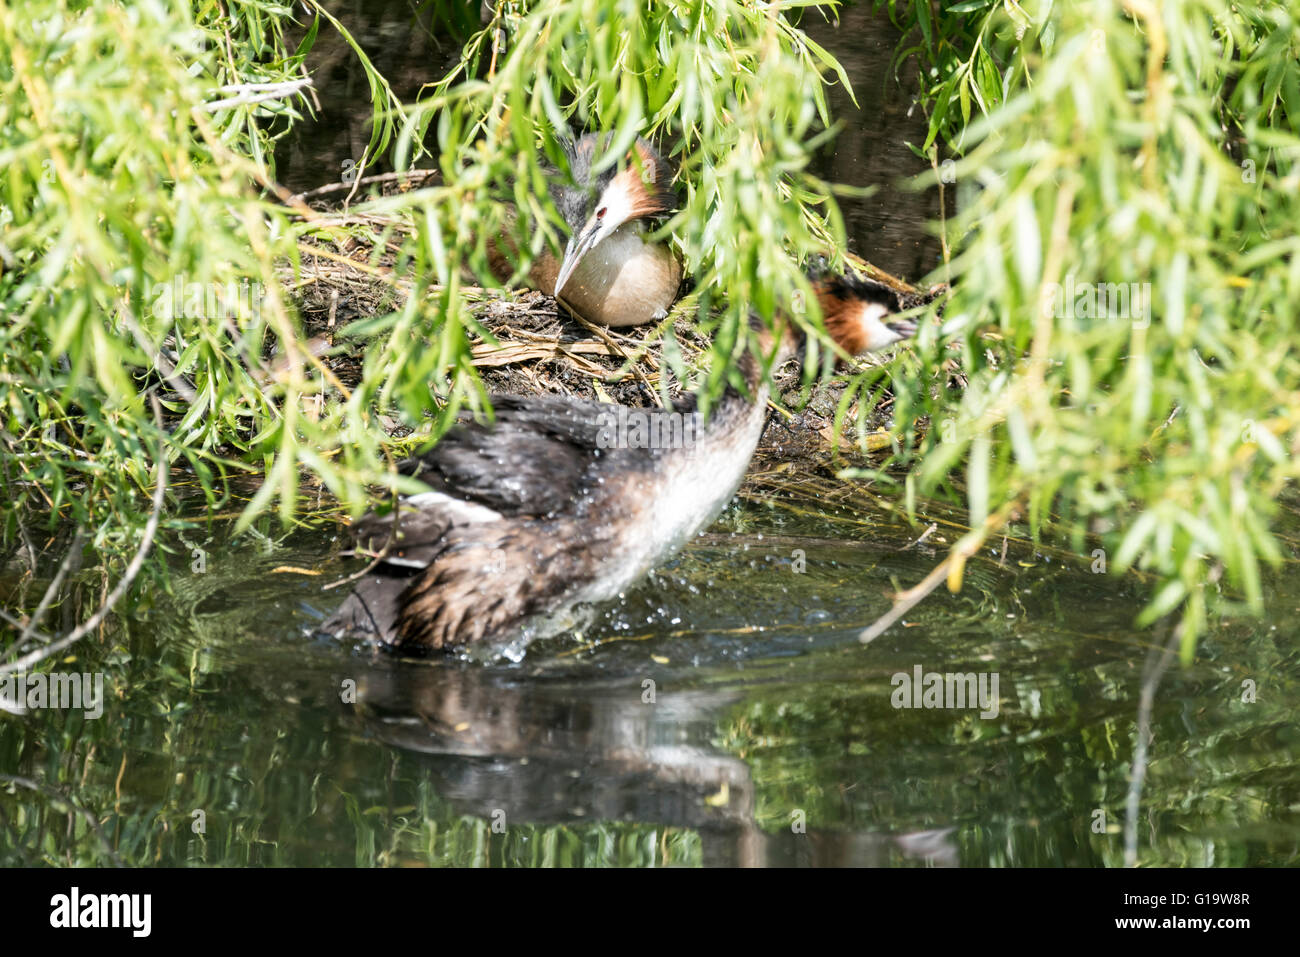 Great Crested Grebes about to swap which one is incubating their eggs - Stock Image